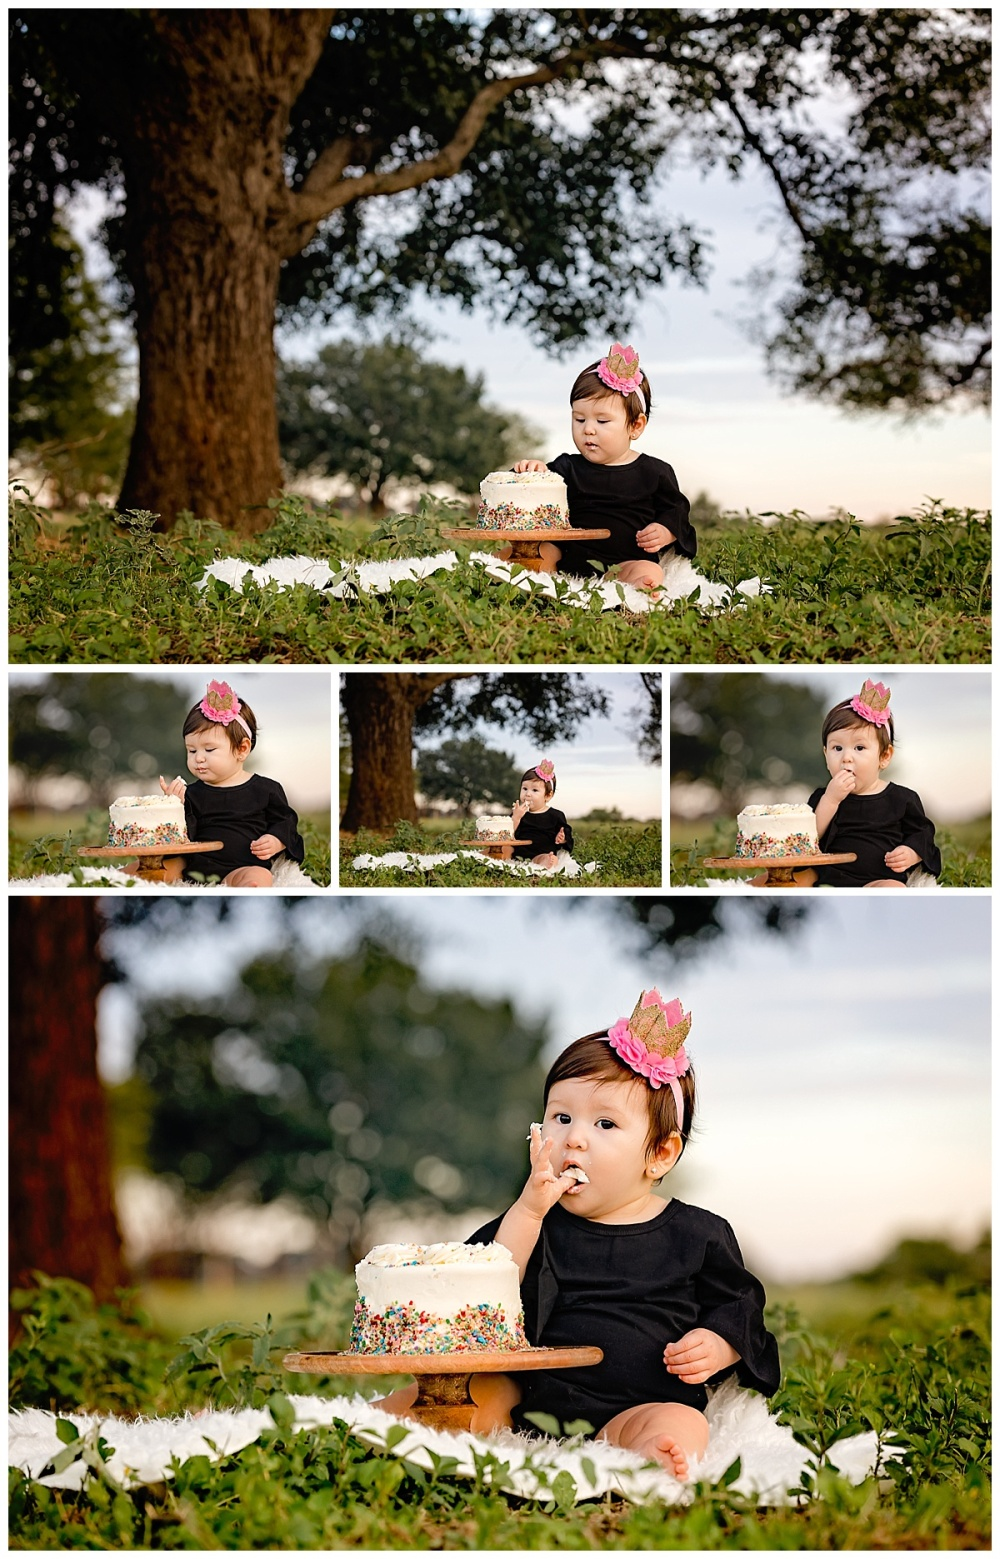 Family-Photographer-LaVernia-Texas-Fall-Carly-Barton-Photography-Zadie-Cake-Smash_0007.jpg